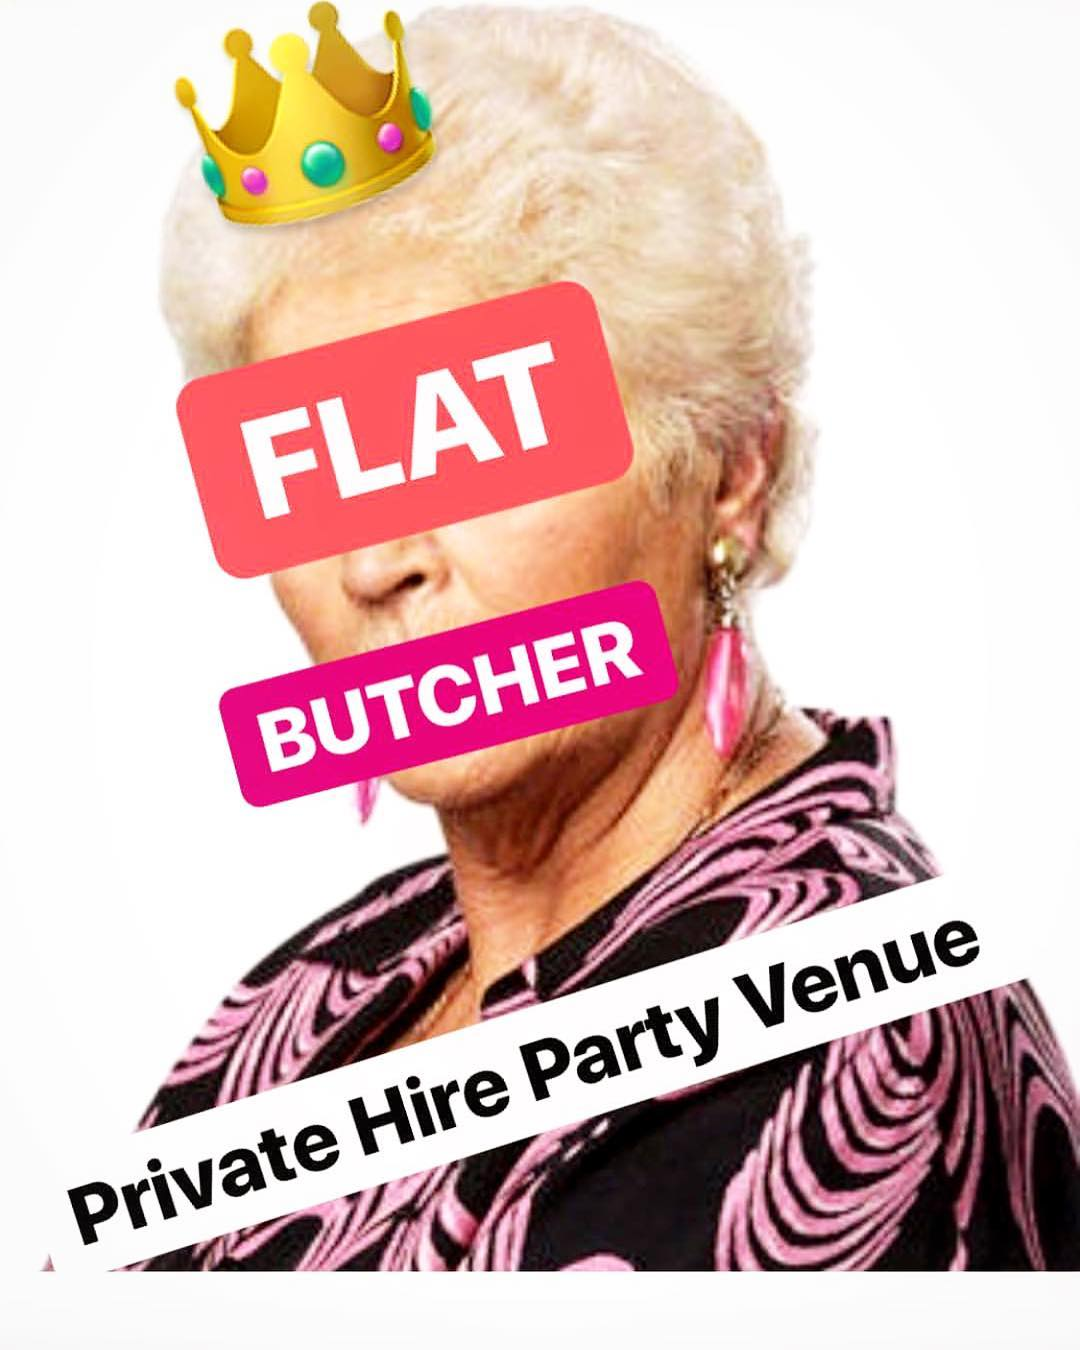 FLAT BUTCHER PRESENTS: THE 90S BOTTOMLESS BOOZY BRUNCH FLAT PARTY